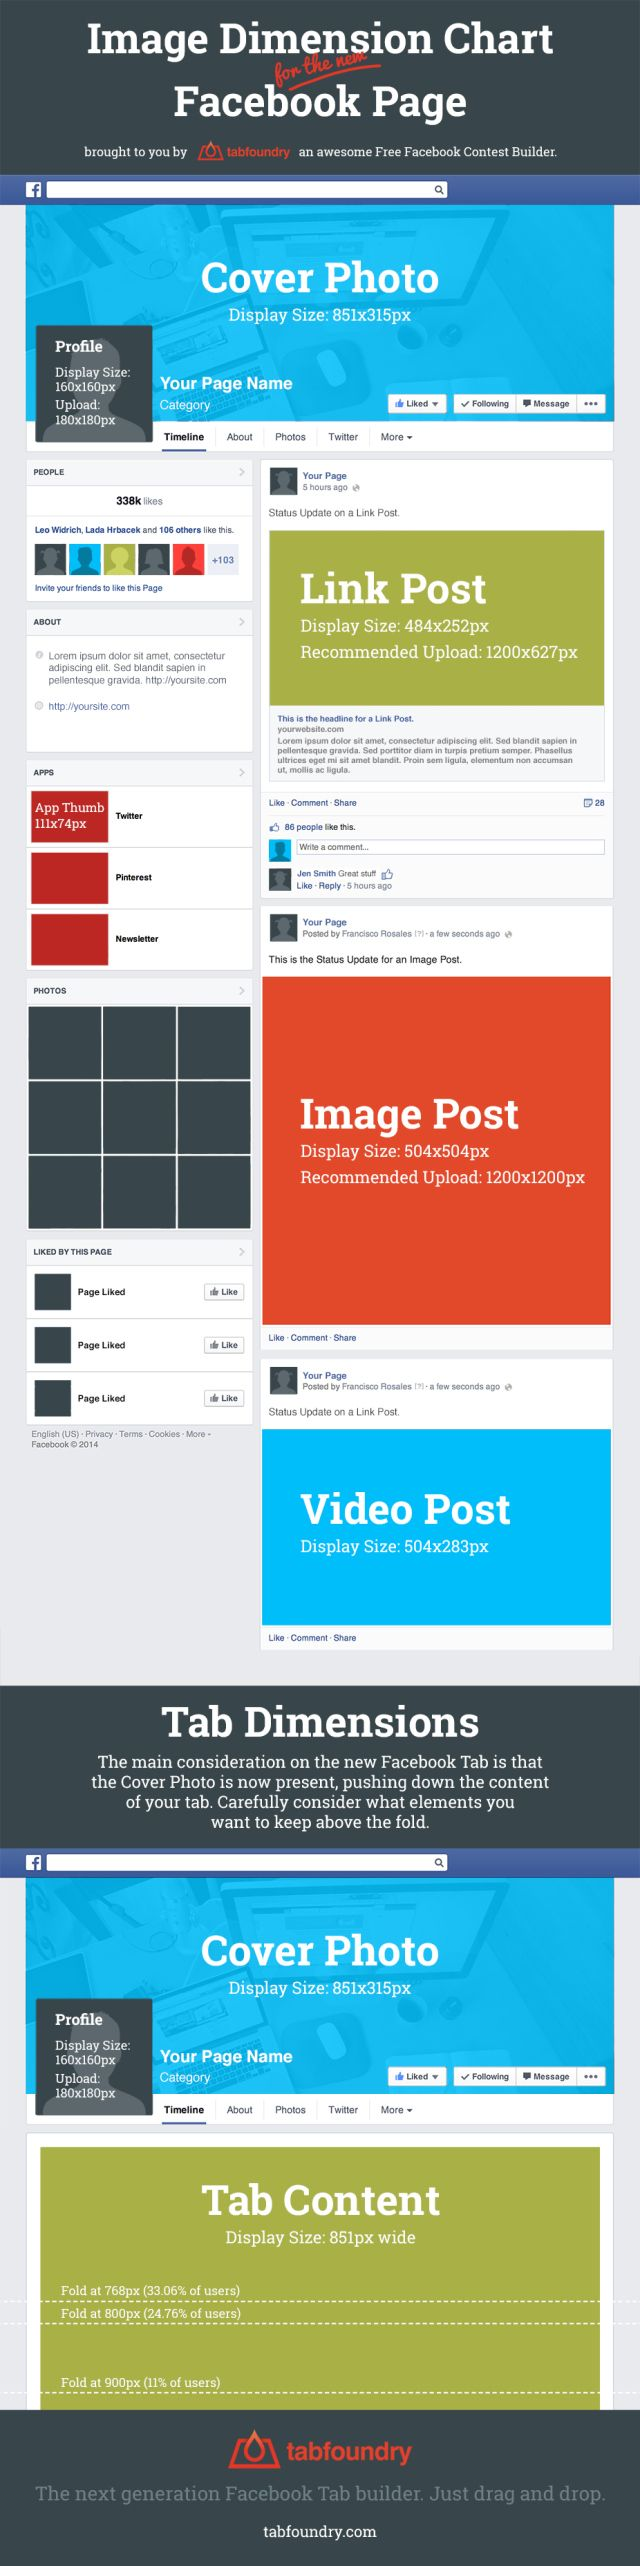 Image dimmension chart for the new FaceBook Page #infographic: Image Dimen, Website, Web Site, Social Media, Dimen Charts, Internet Site, Dimensions Imágen, Socialmedia, Facebook Marketing